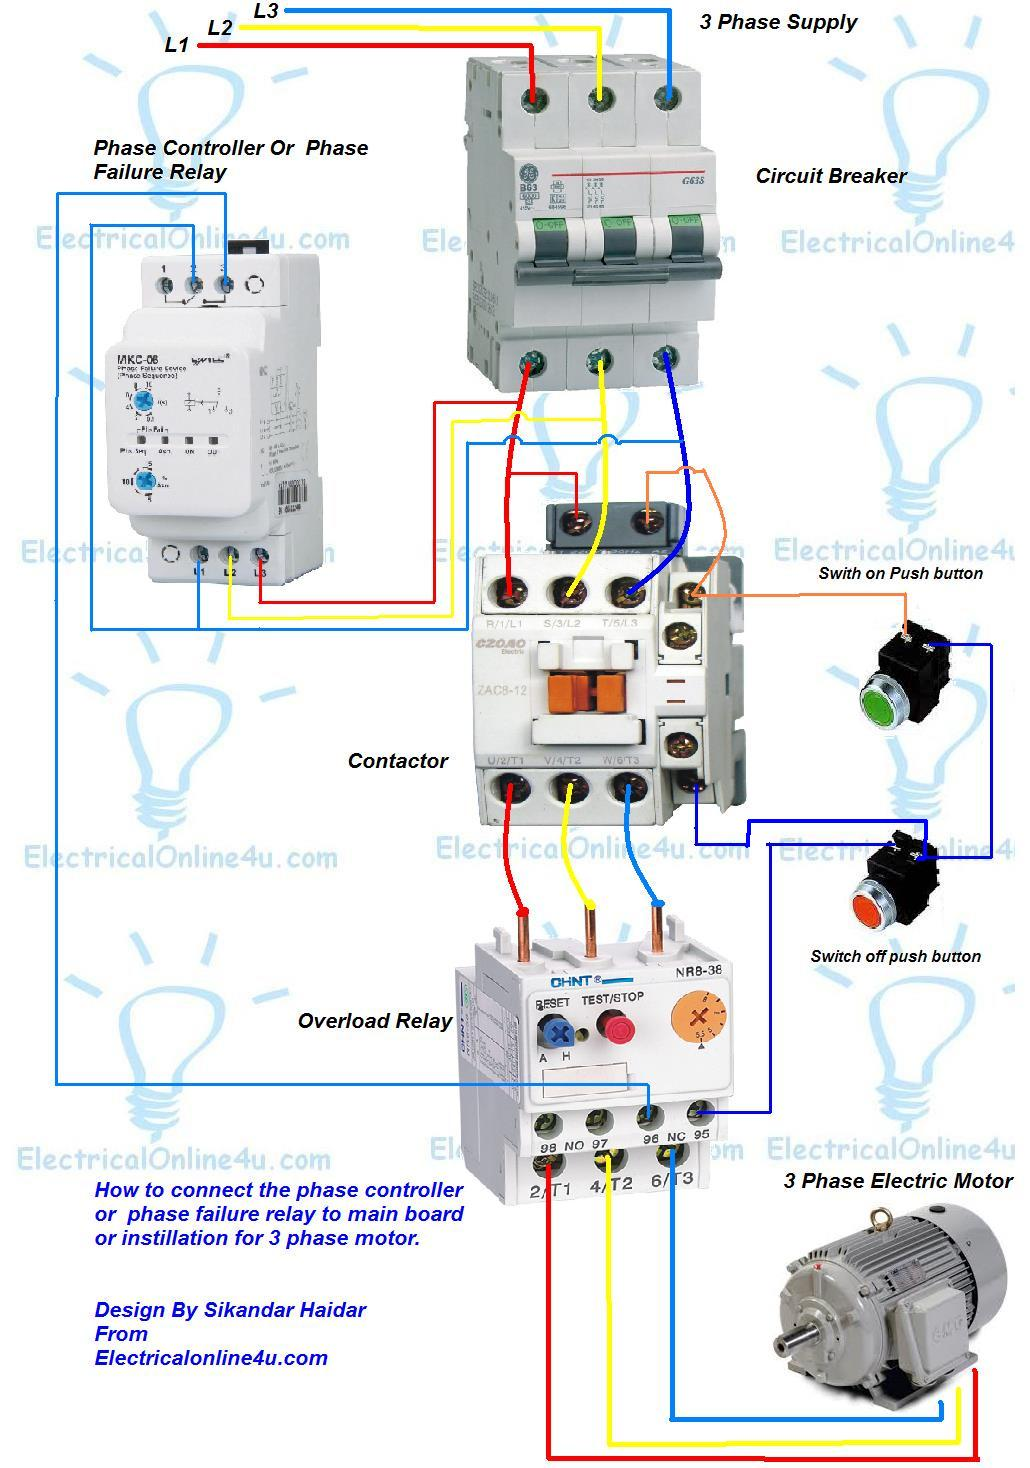 Phase%2Bfailure%2Brelay%2B %2Bphase%2Bcontroller%2Binstilaion%2Bin%2B3%2Bphase%2BMain%2Bboard%2Bor%2Bfor%2B3%2Bphase%2Bmotor phase controller wiring phase failure relay diagram electrical 3 phase motor starter wiring at webbmarketing.co